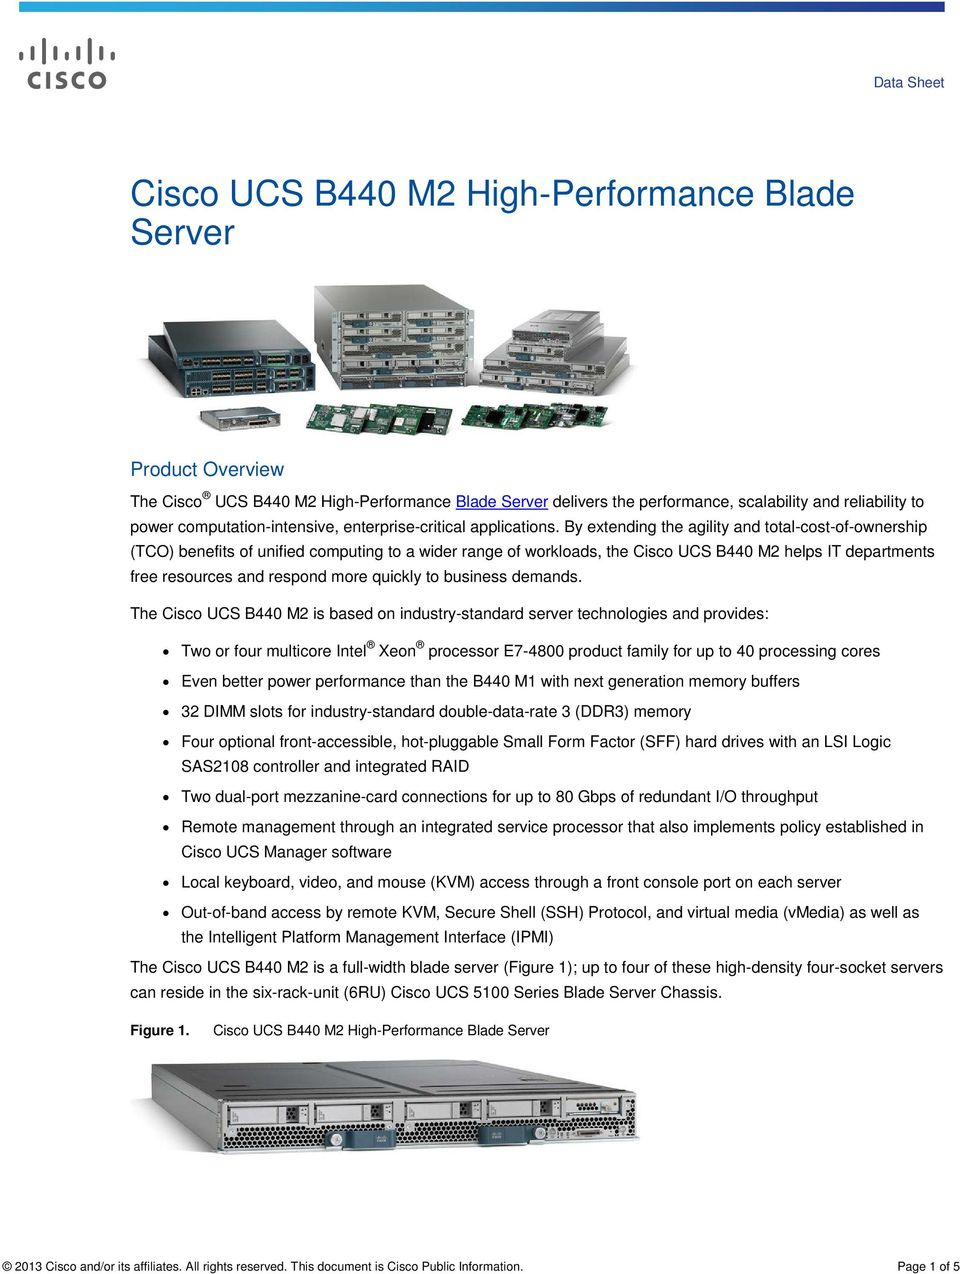 By extending the agility and total-cost-of-ownership (TCO) benefits of unified computing to a wider range of workloads, the Cisco UCS B440 M2 helps IT departments free resources and respond more